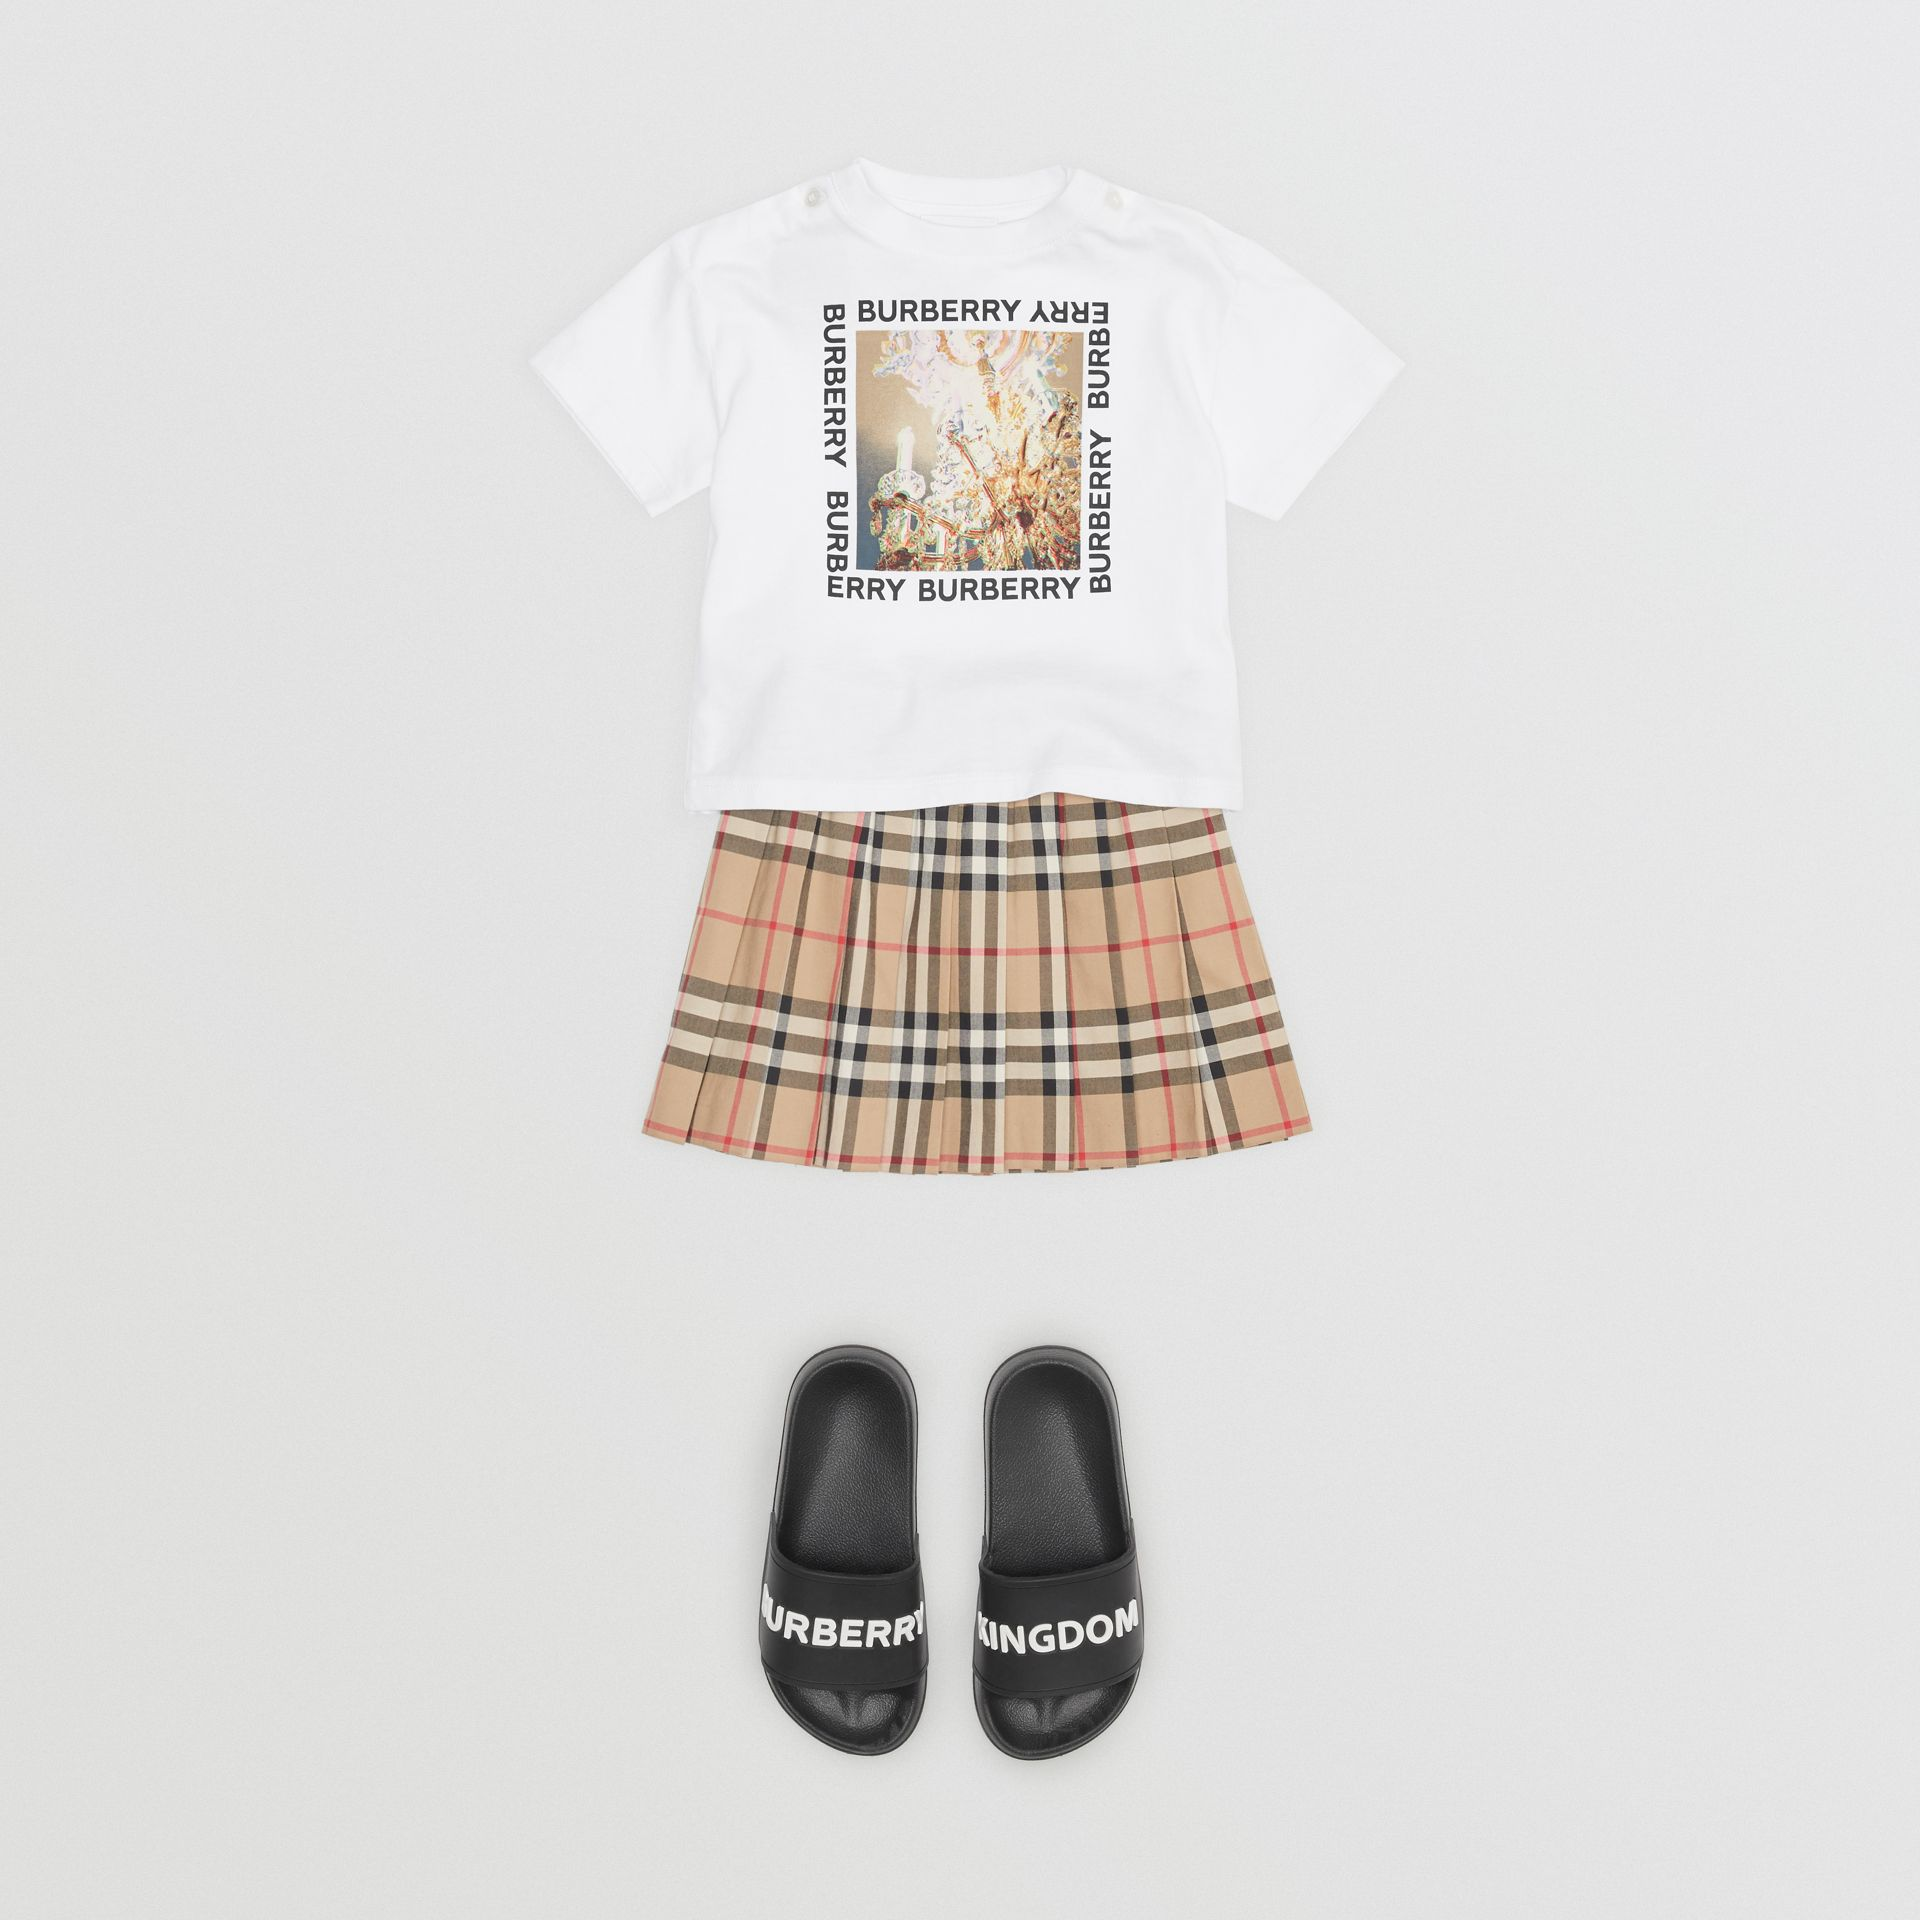 Chandelier Print Cotton T-shirt in White - Children | Burberry - gallery image 2